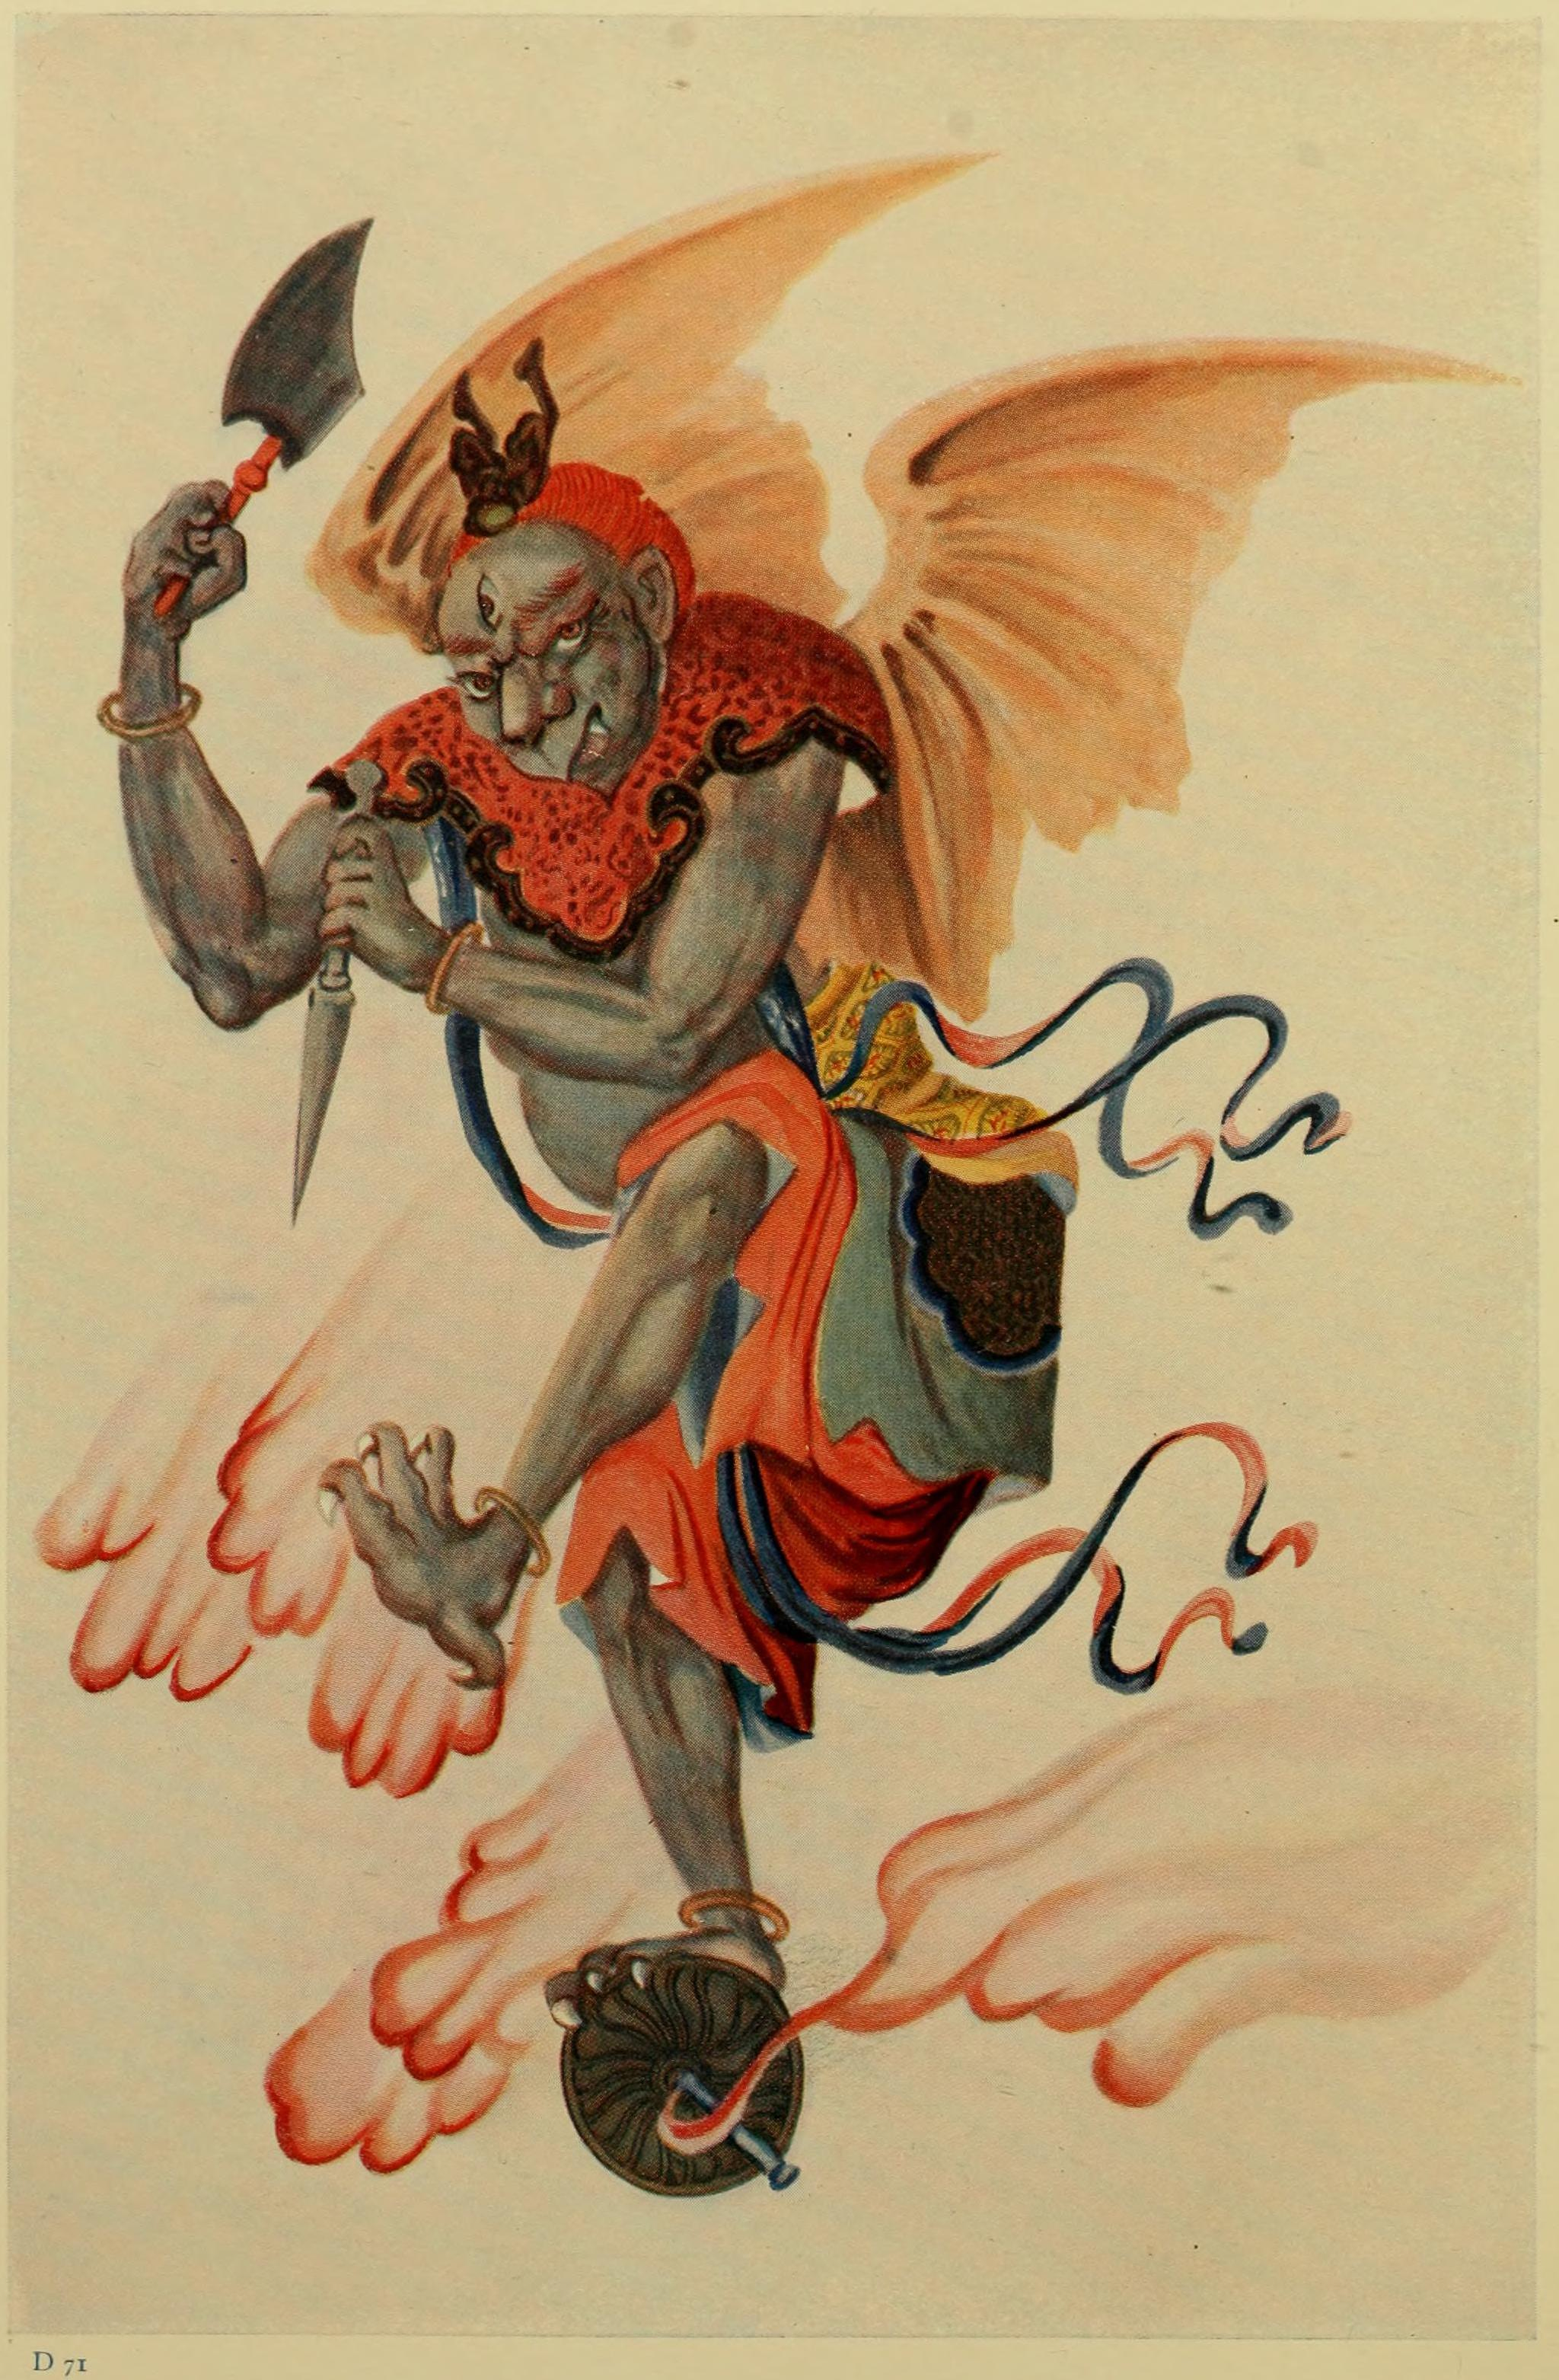 God of Thunder from Chinese mythology